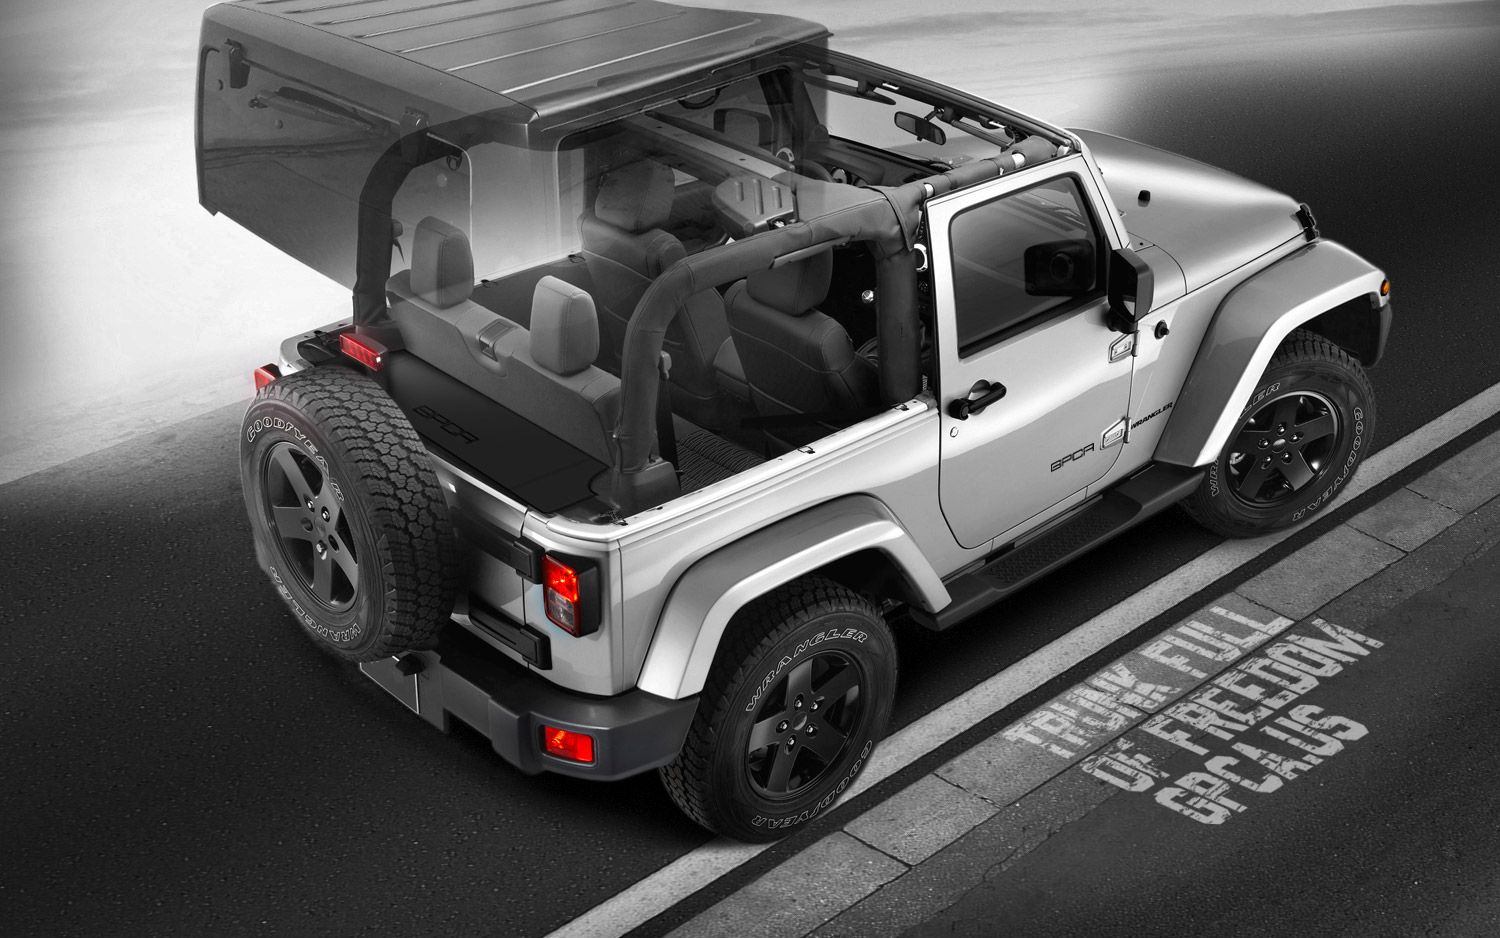 Gpca Jeep Wrangler Jk 2 Door Trunk Cargo Cover 3 Awesome Rear Sub Configurations